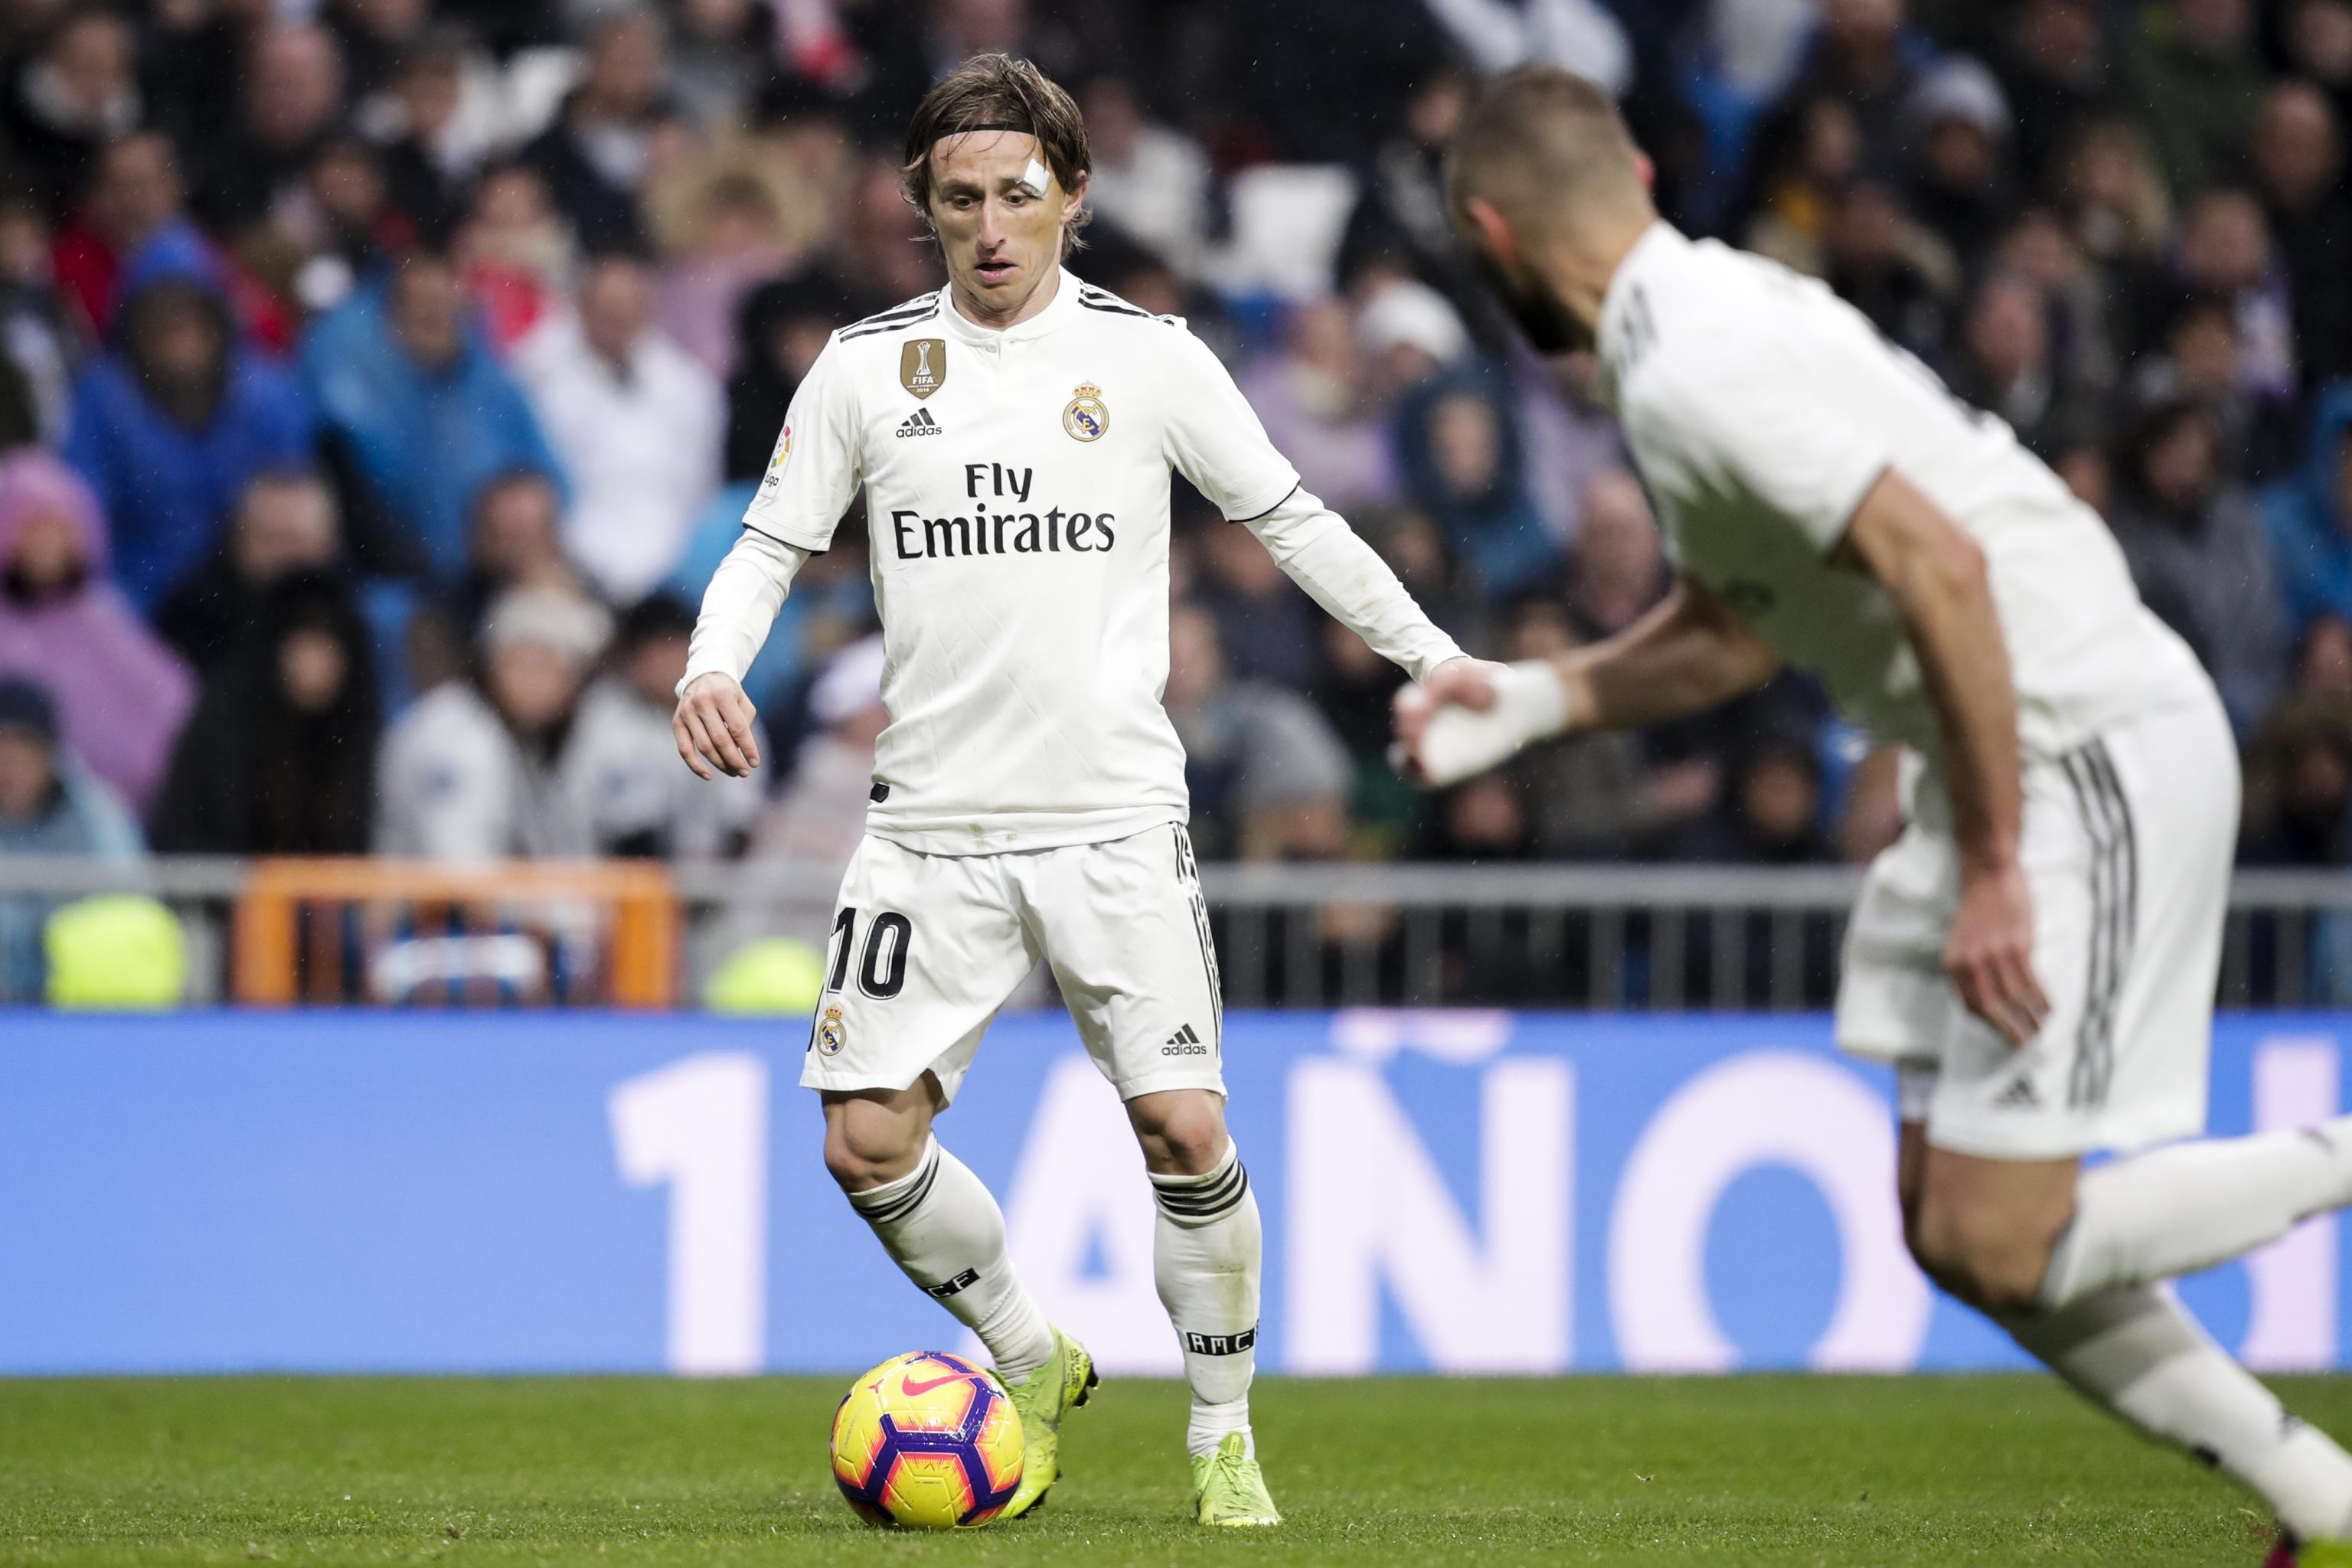 Espanyol Vs Real Madrid Odds Preview Live Stream Tv Info Bleacher Report Latest News Videos And Highlights